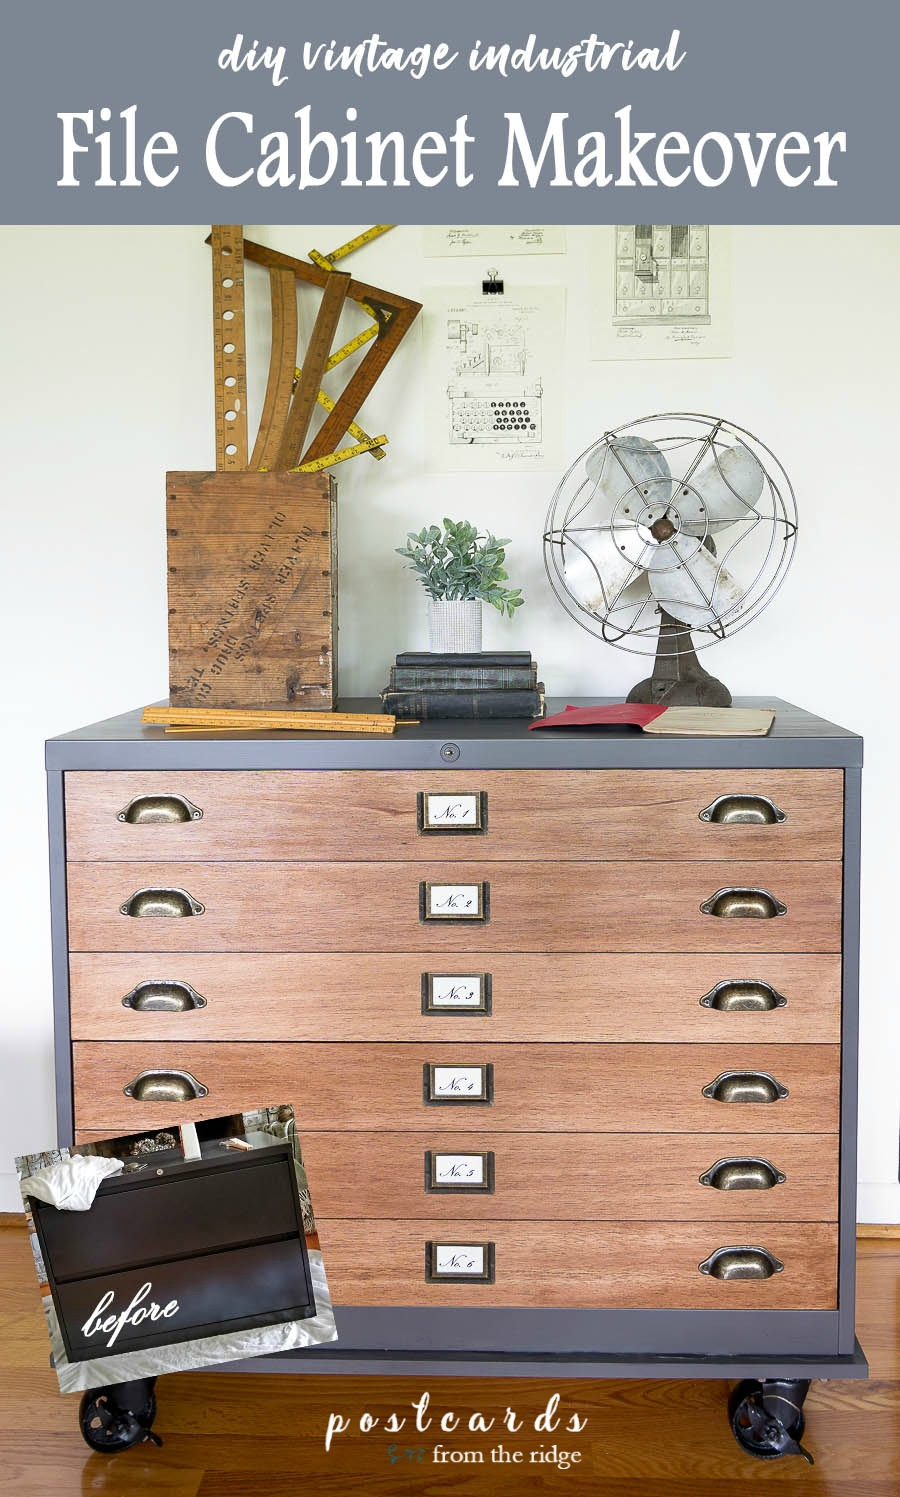 file cabinet makeover with vintage industrial look